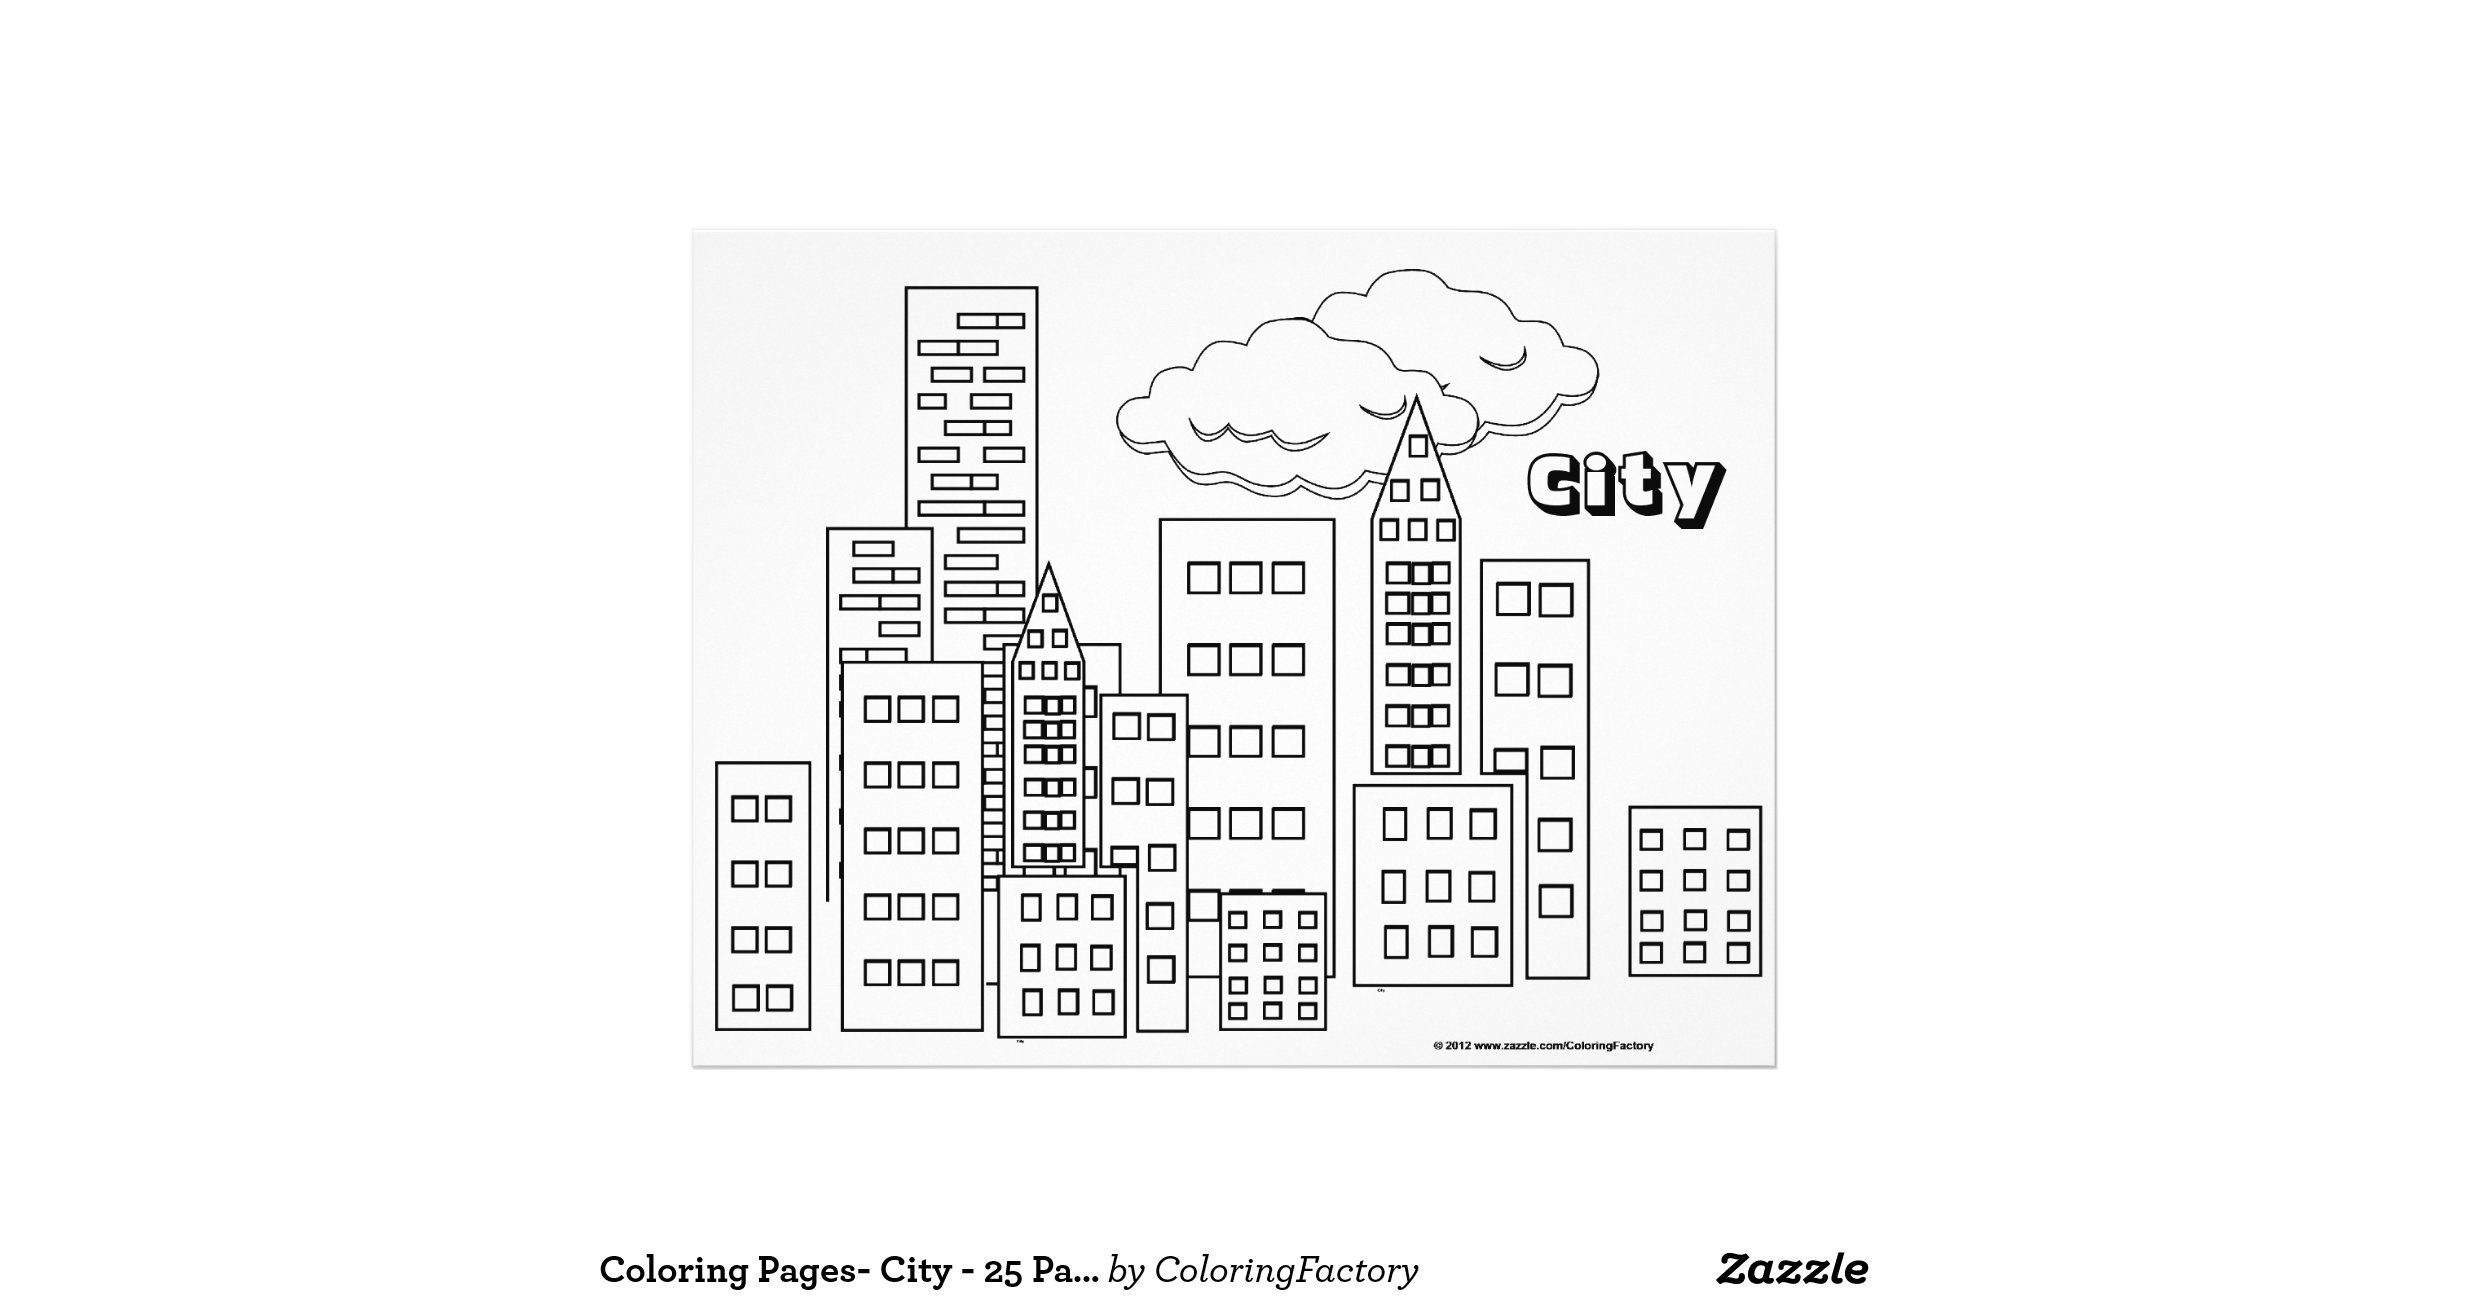 Colouring pages city 25 pack flyer design zazzle for Flyers coloring pages